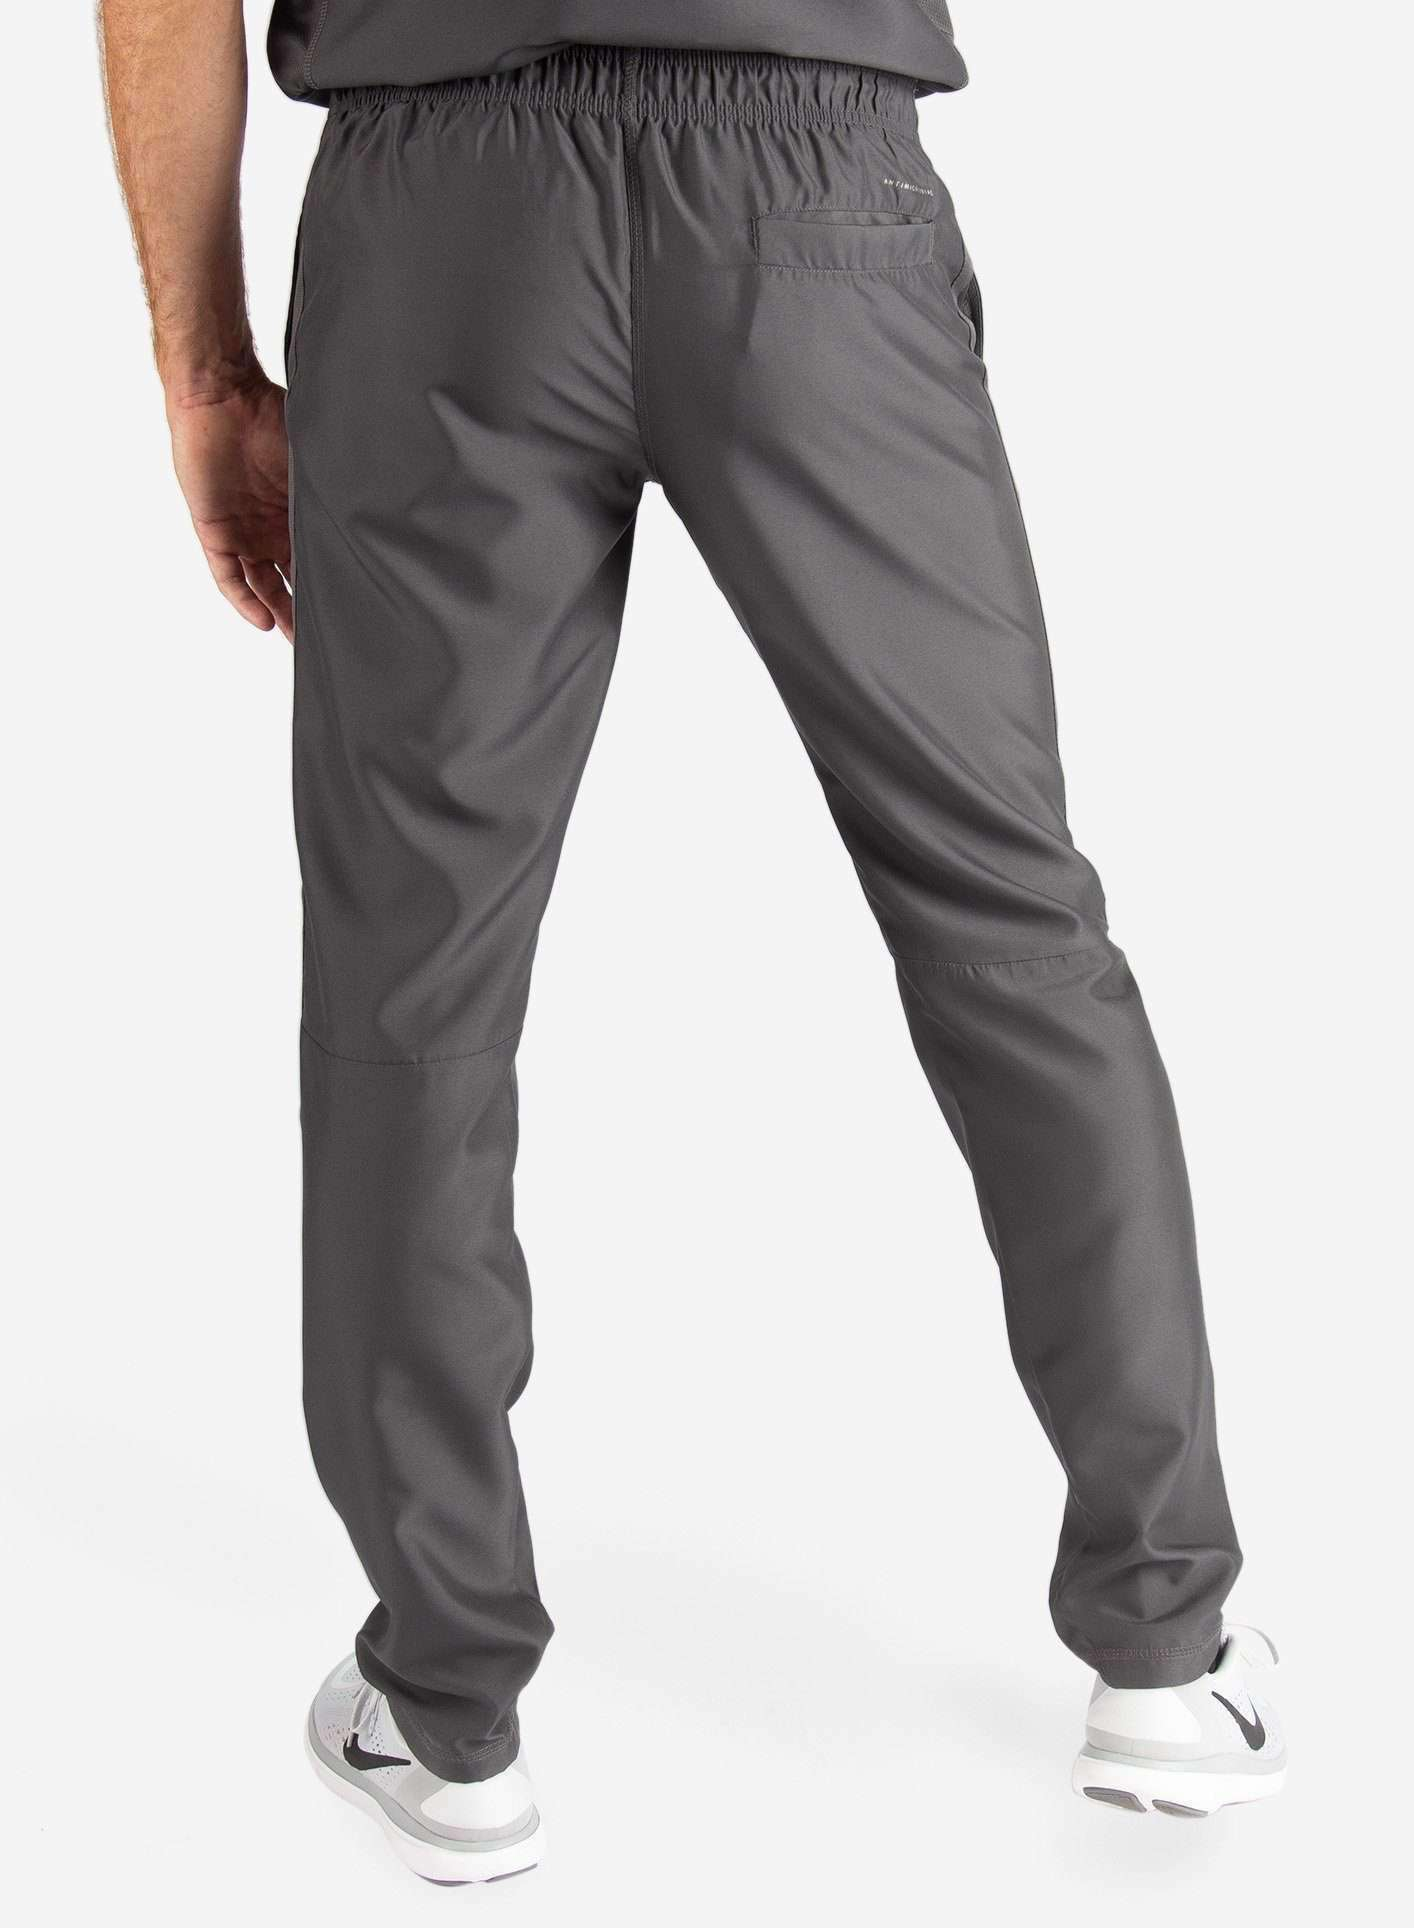 Men's Slim Fit Scrub Pants in Dark Grey Back View